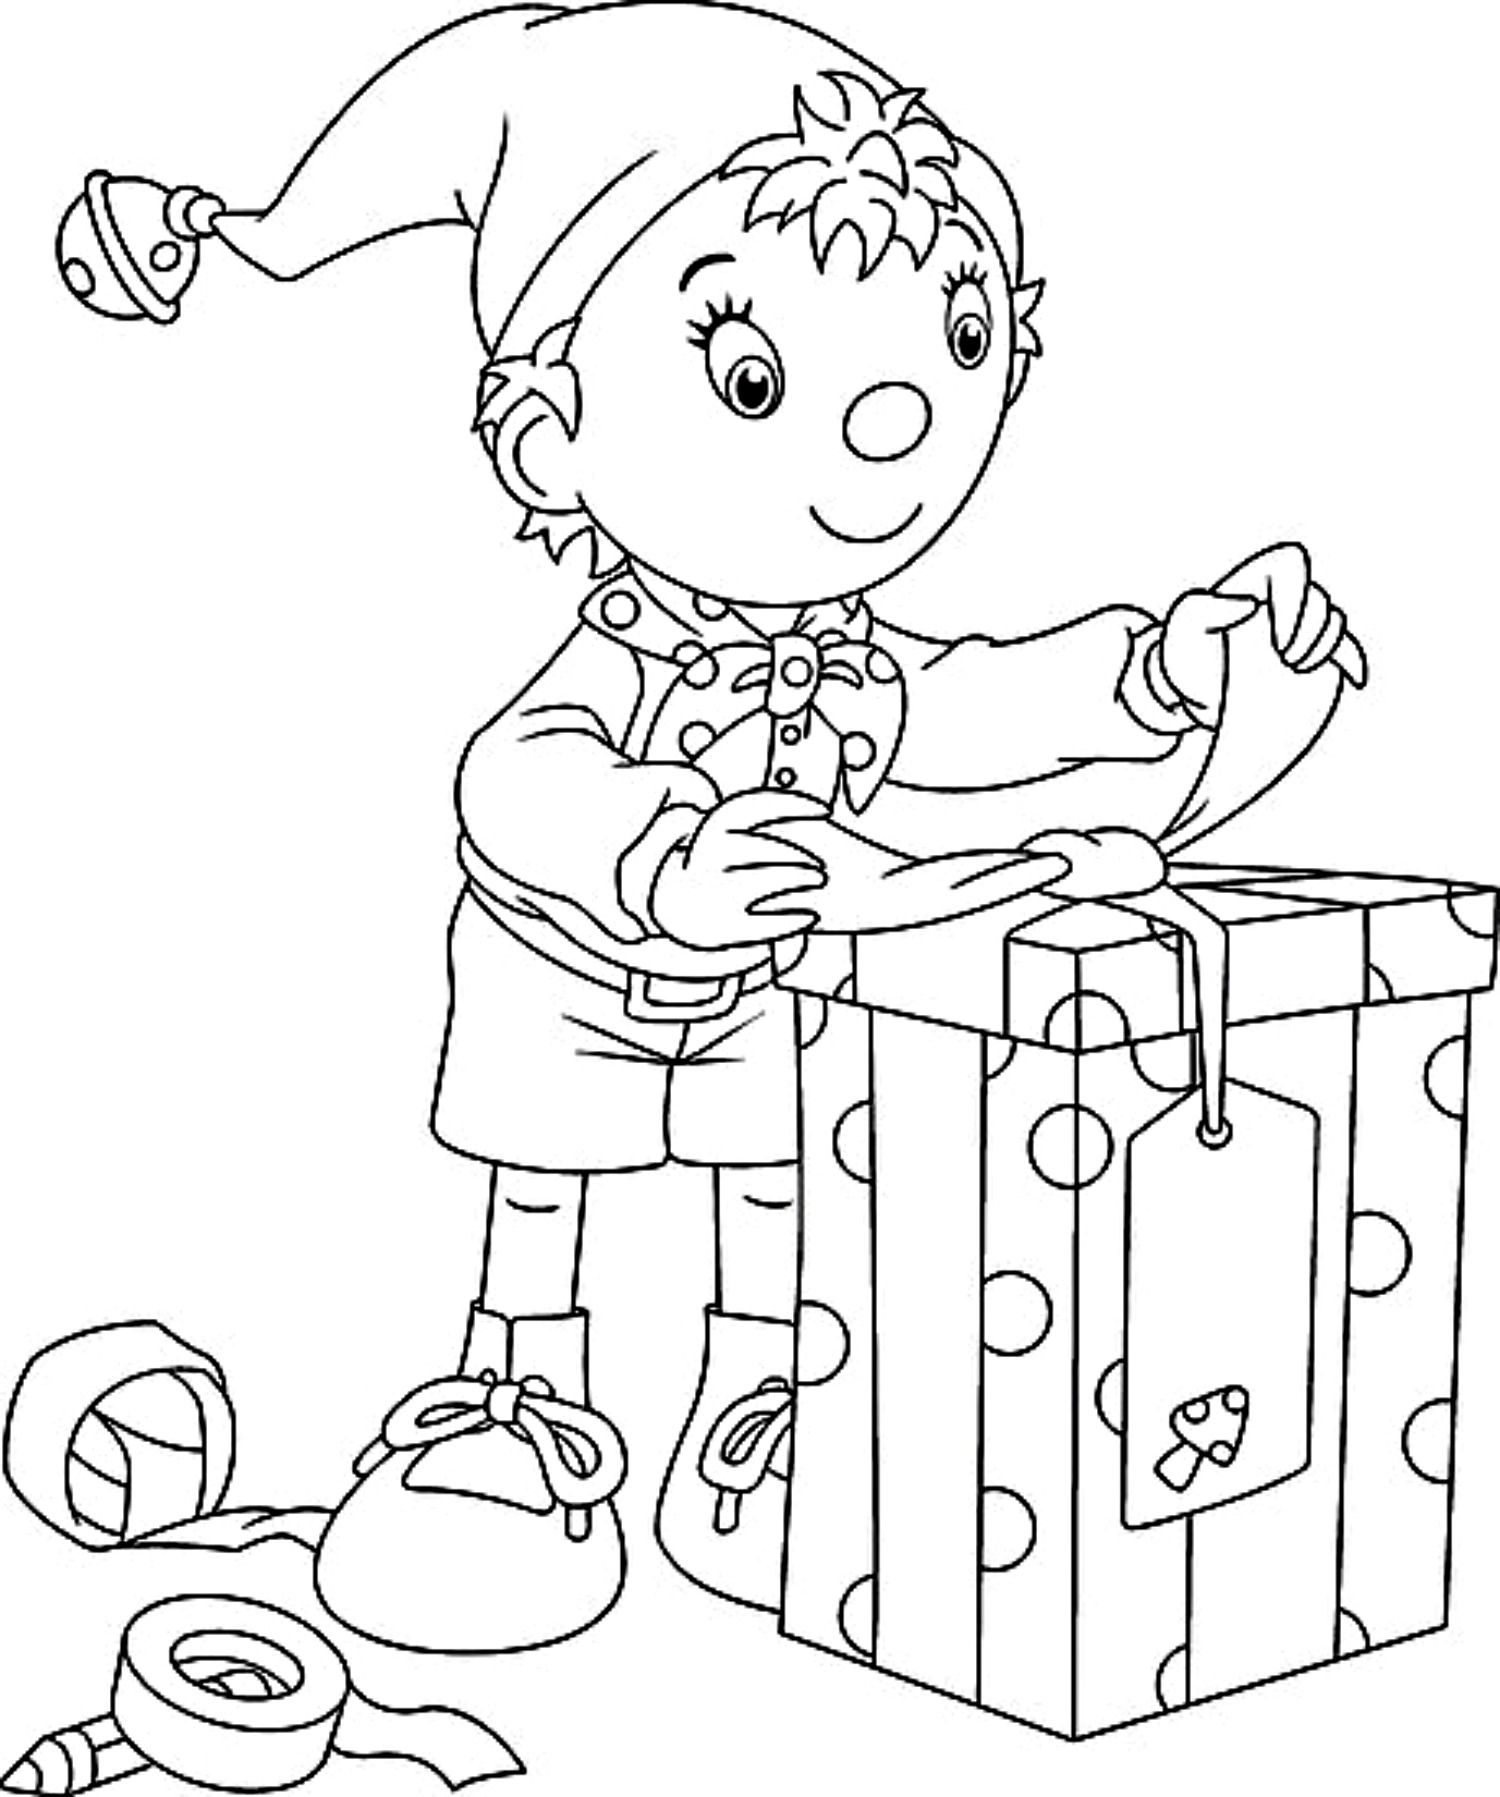 Santa S Elves Coloring Pages With CHRISTMAS COLORING PAGE Song And Free Printable Christmas Elf